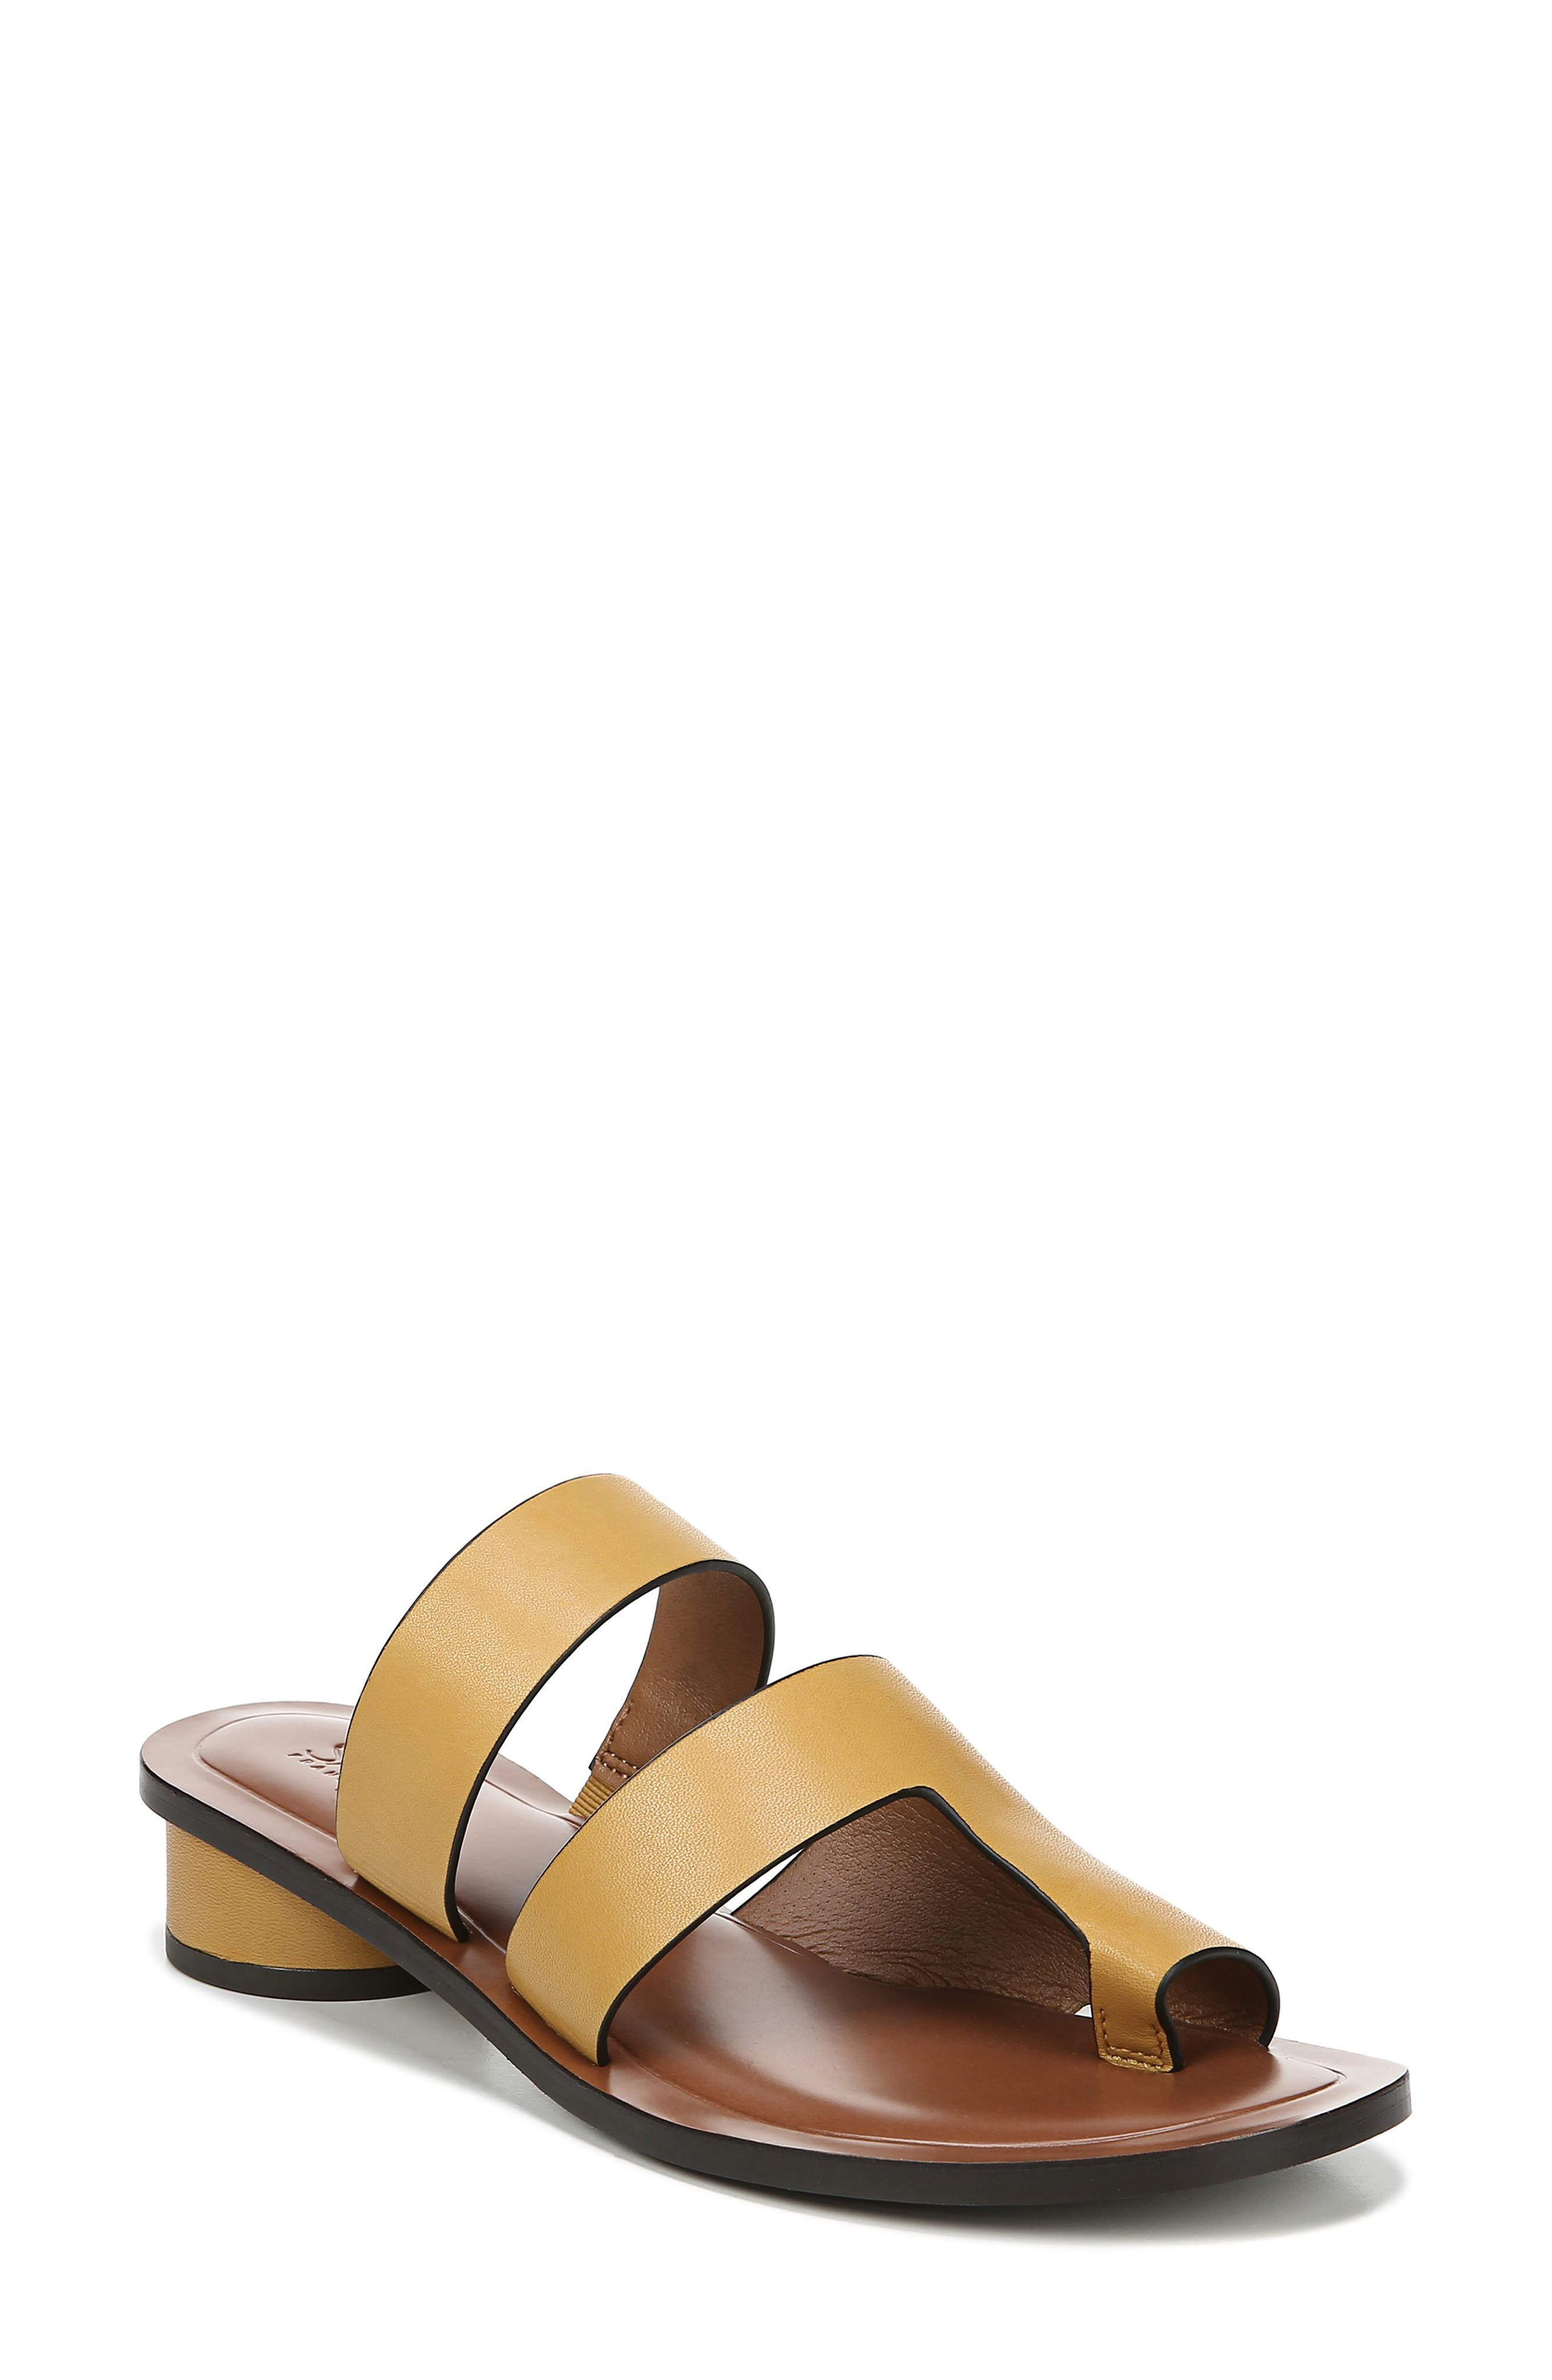 Trixie Slide Sandal, Main, color, YELLOW LEATHER